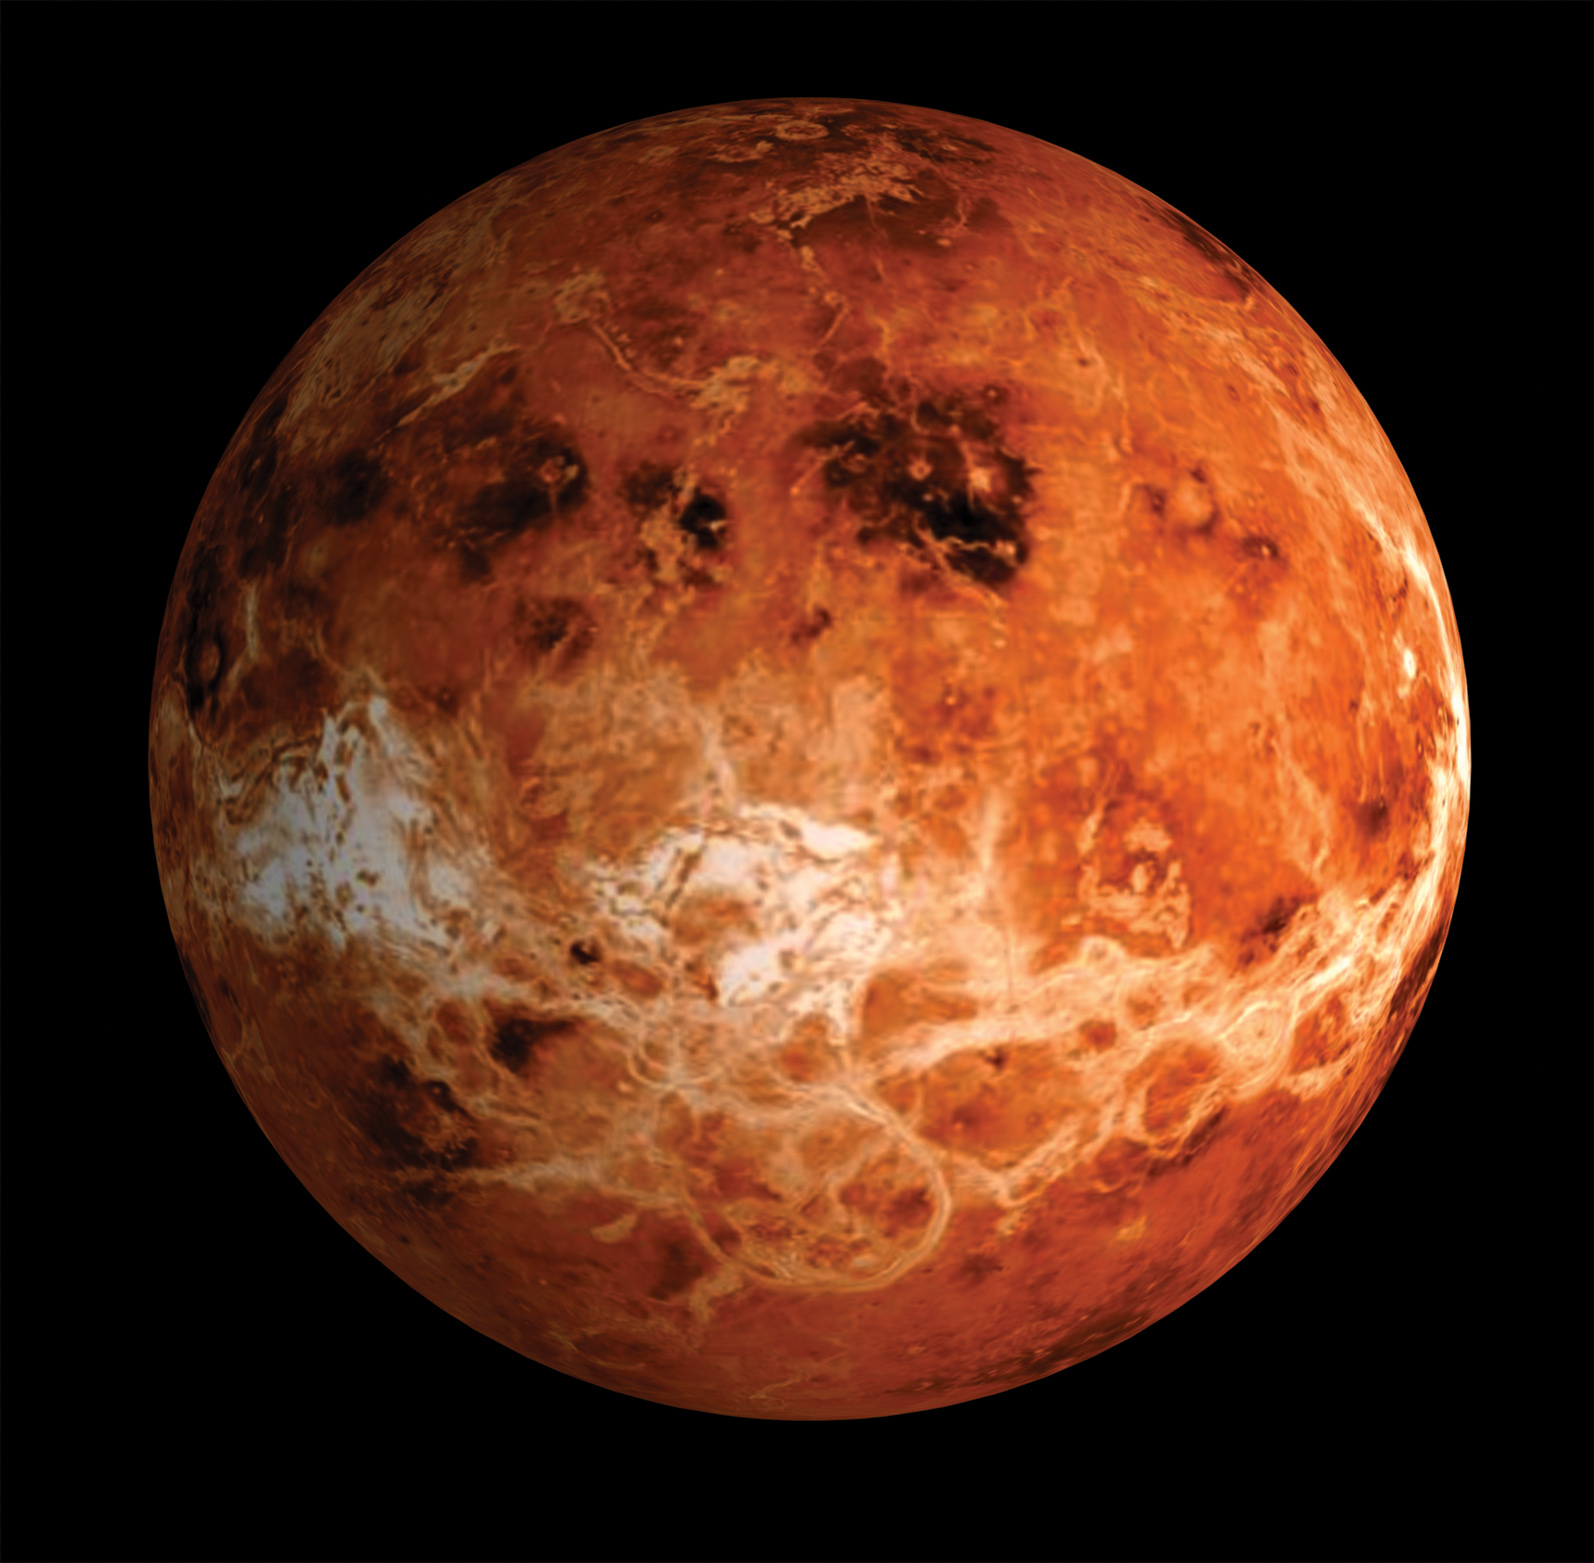 Printable pictures of the planet venus Keep Healthy Eating Simple: keephealthyeatingsimple.com/amm-n7t.htm